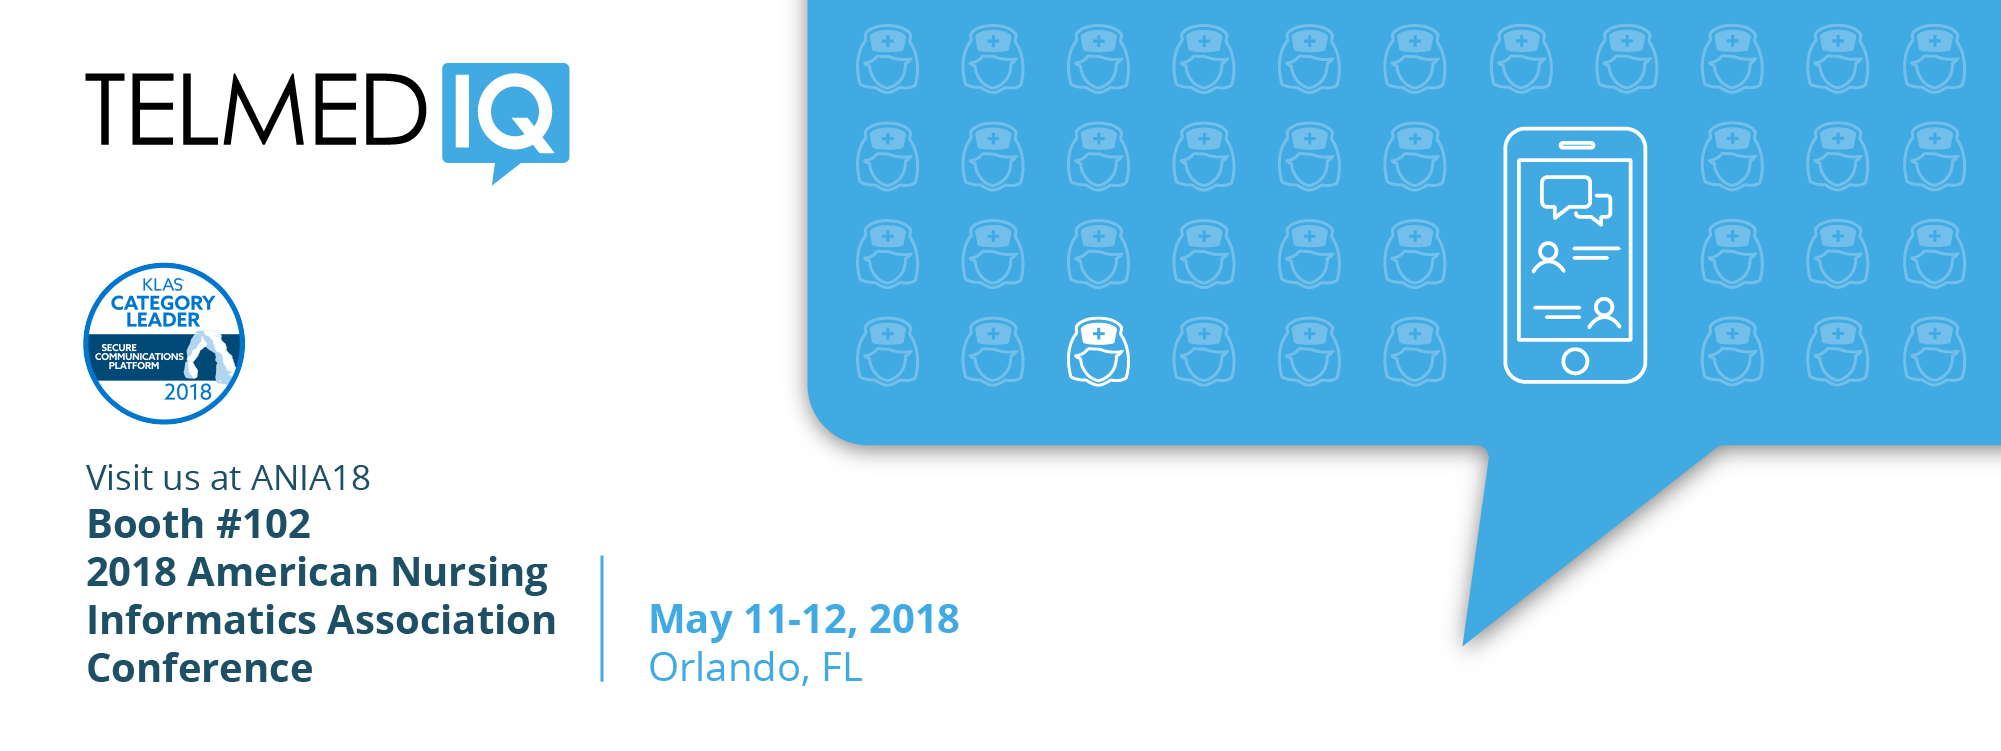 Join Telmediq at the ANIA Annual Conference in Orlando